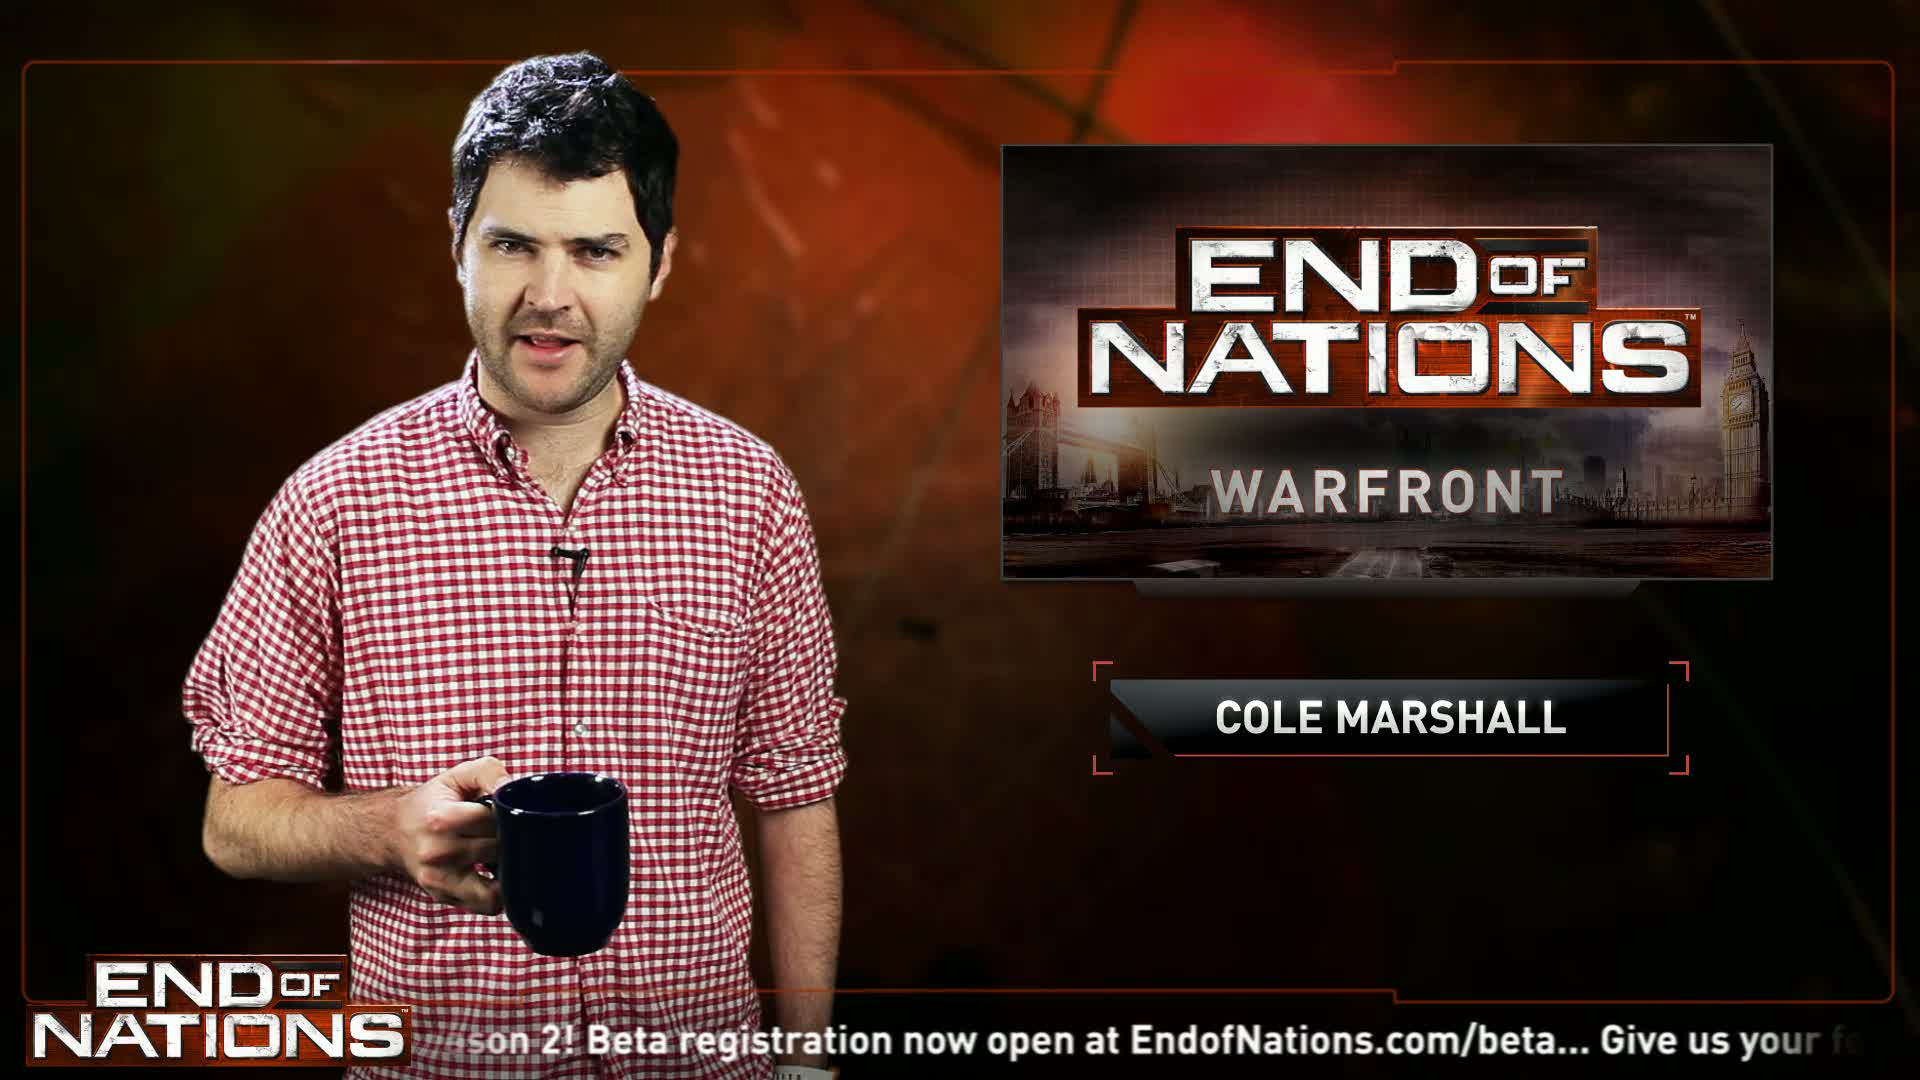 Warfront video: Episode 4 | End of Nations